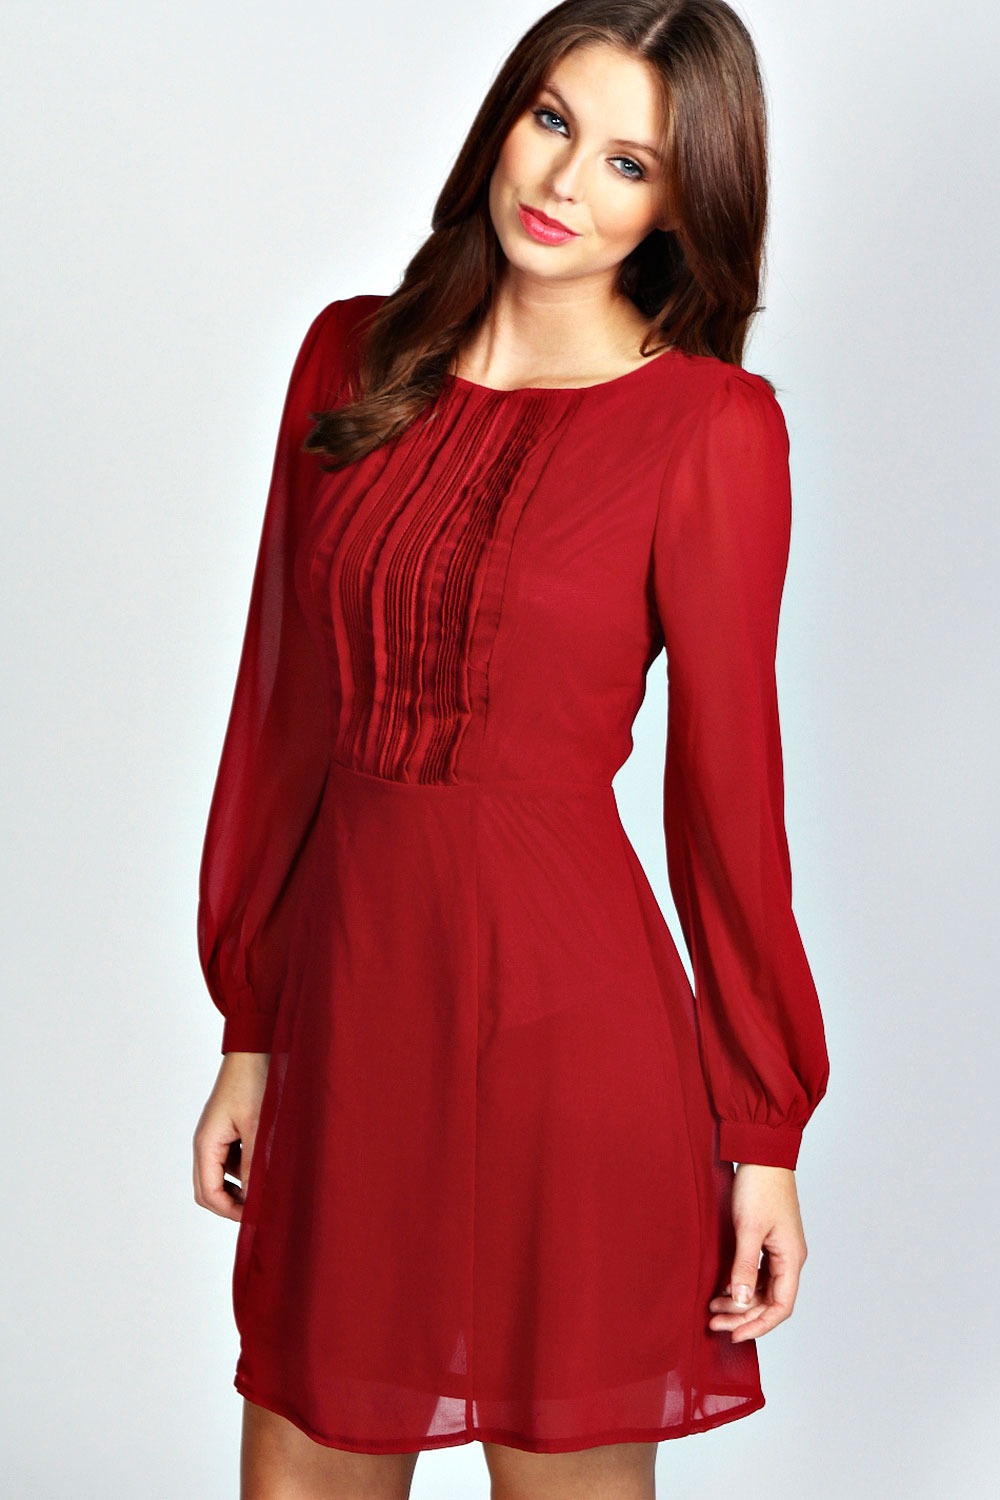 Boohoo isabel long sleeve chiffon fit and flare dress ebay for Long sleeve wedding guest dress